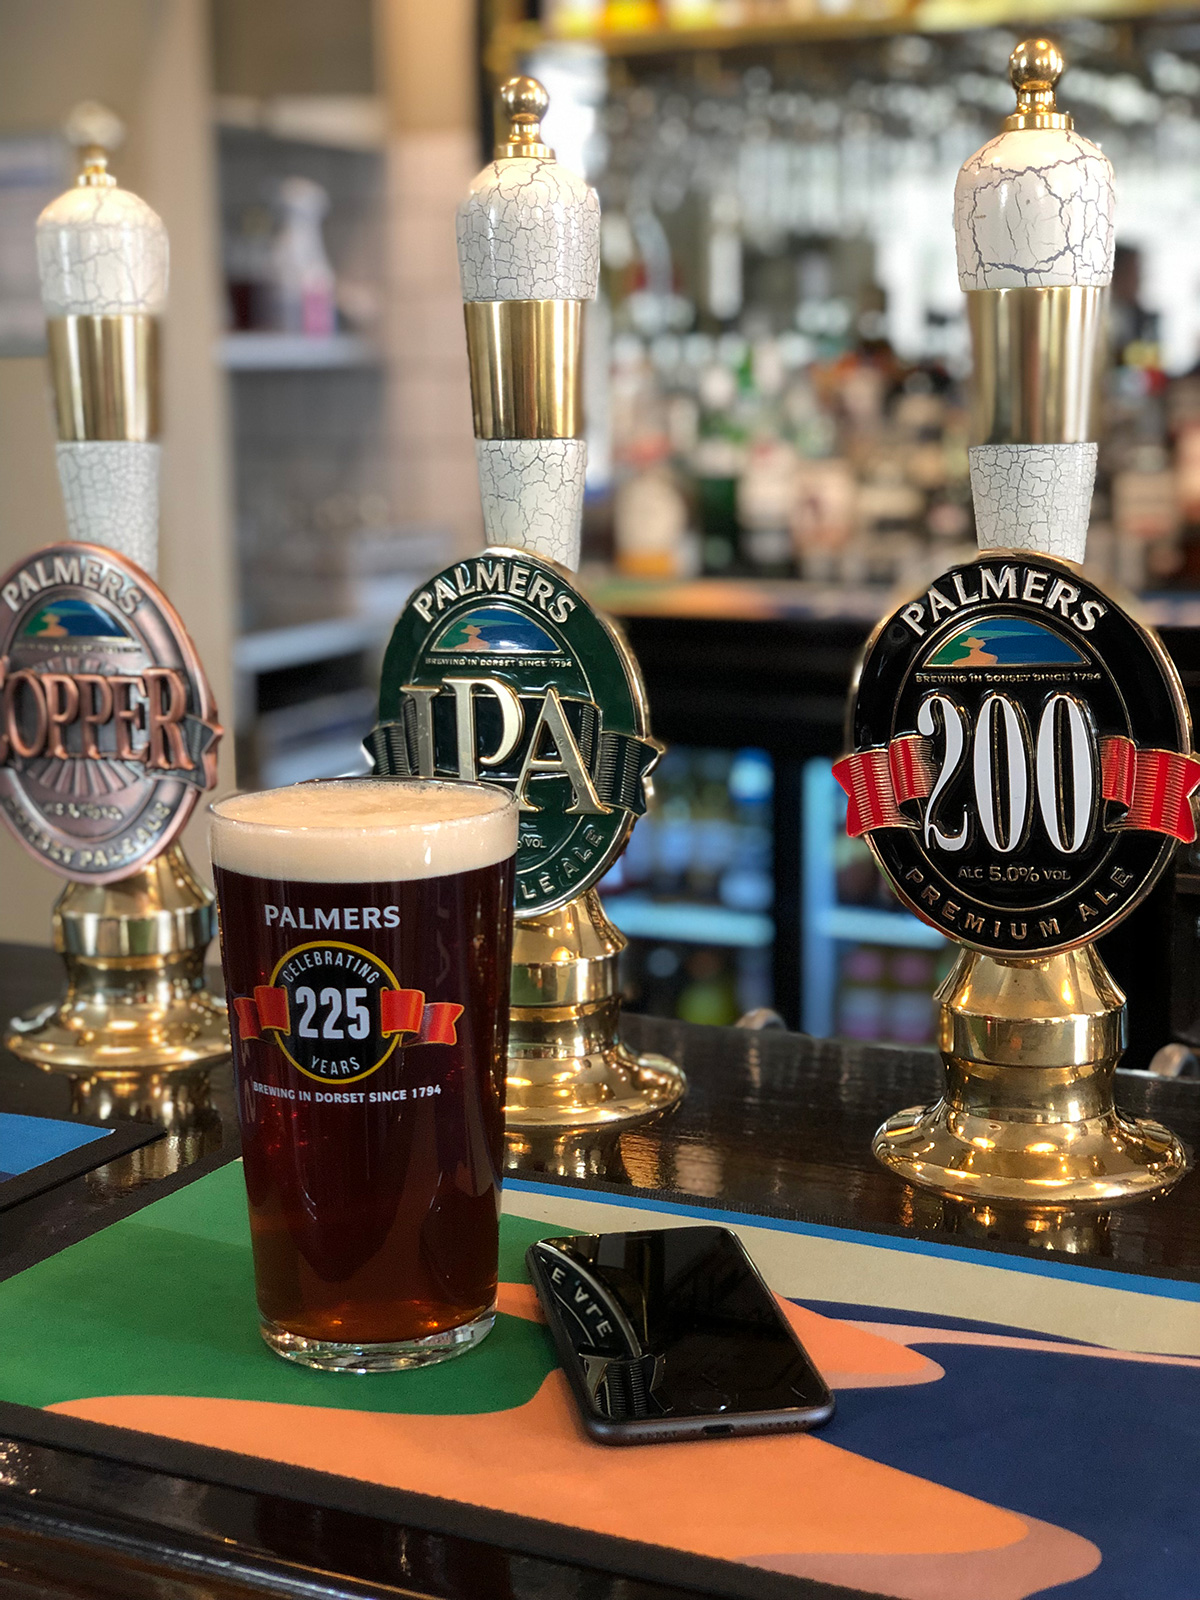 Palmers 225 years. Drink after a brewery tour.